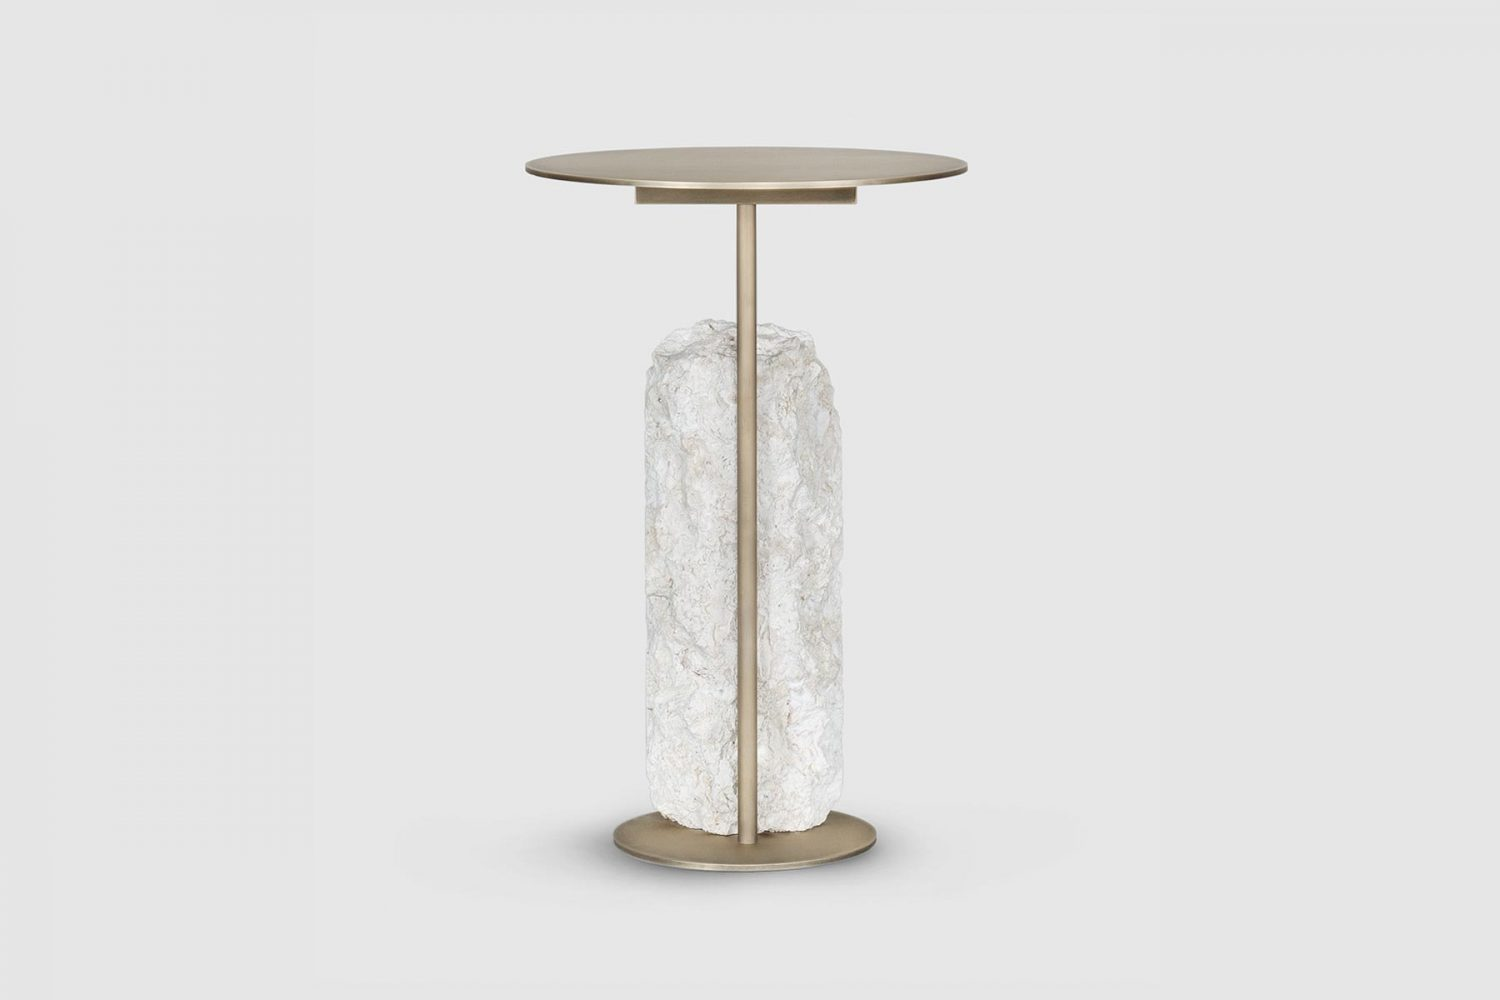 Pico-G703148-Side-Table-02